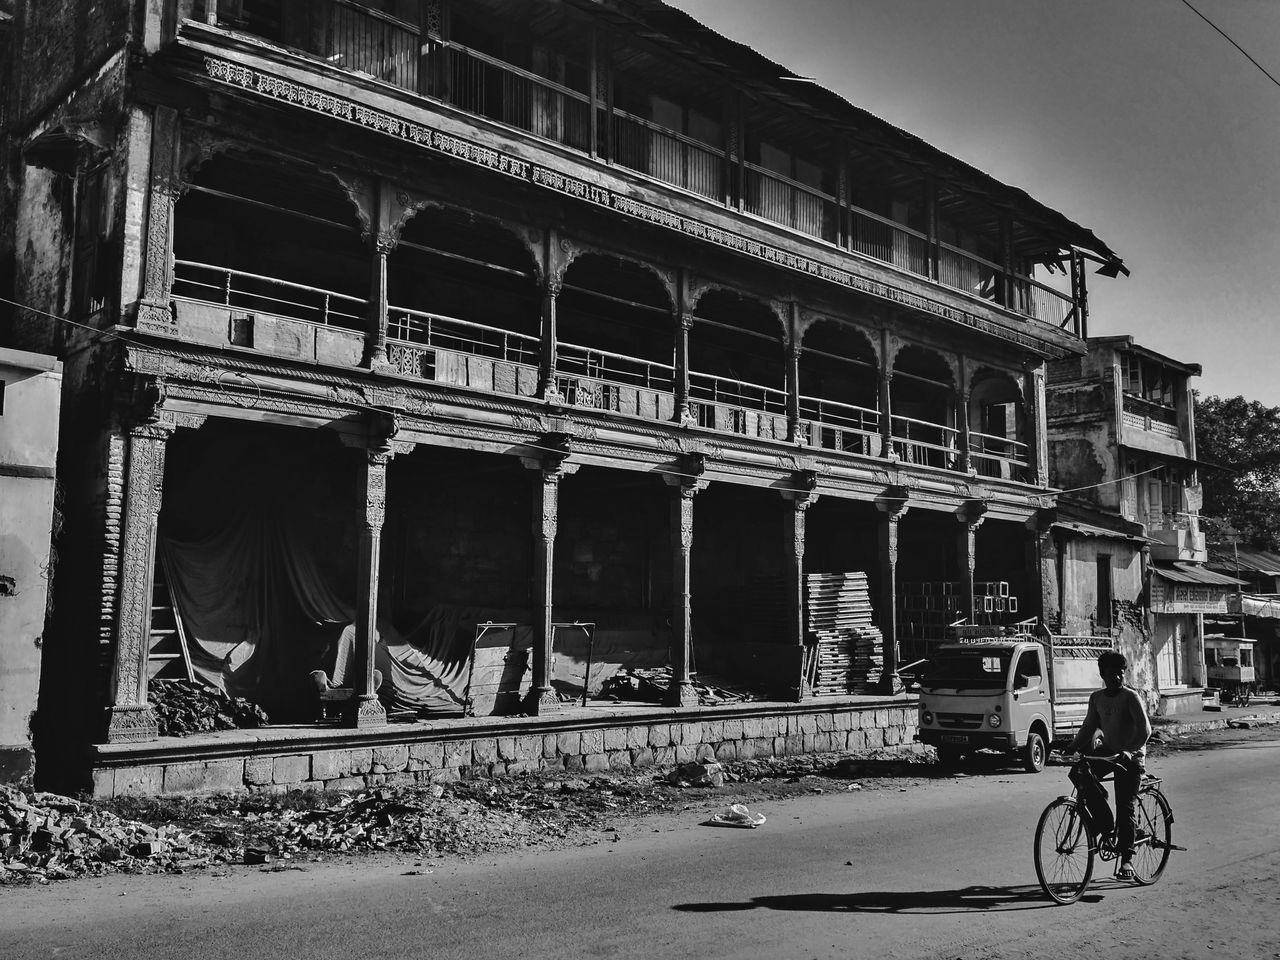 architecture, built structure, building exterior, transportation, architectural column, bicycle, bridge - man made structure, history, outdoors, real people, travel destinations, men, day, sky, one person, city, people